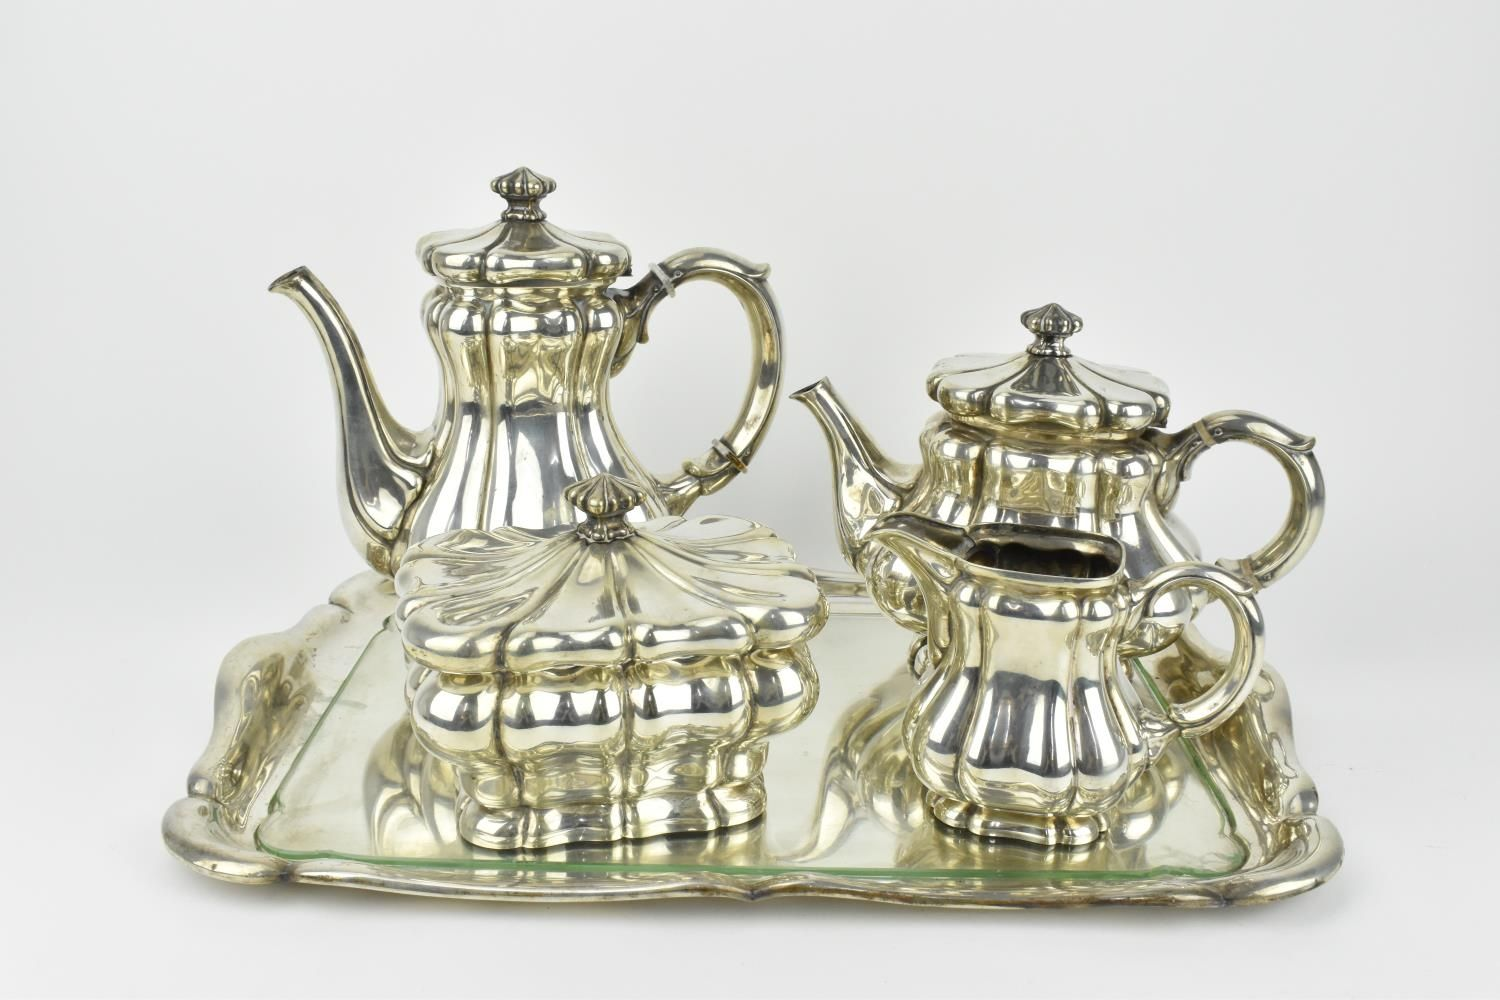 Fine Silver & Jewellery followed by Antiques, Fine Art & Collectables